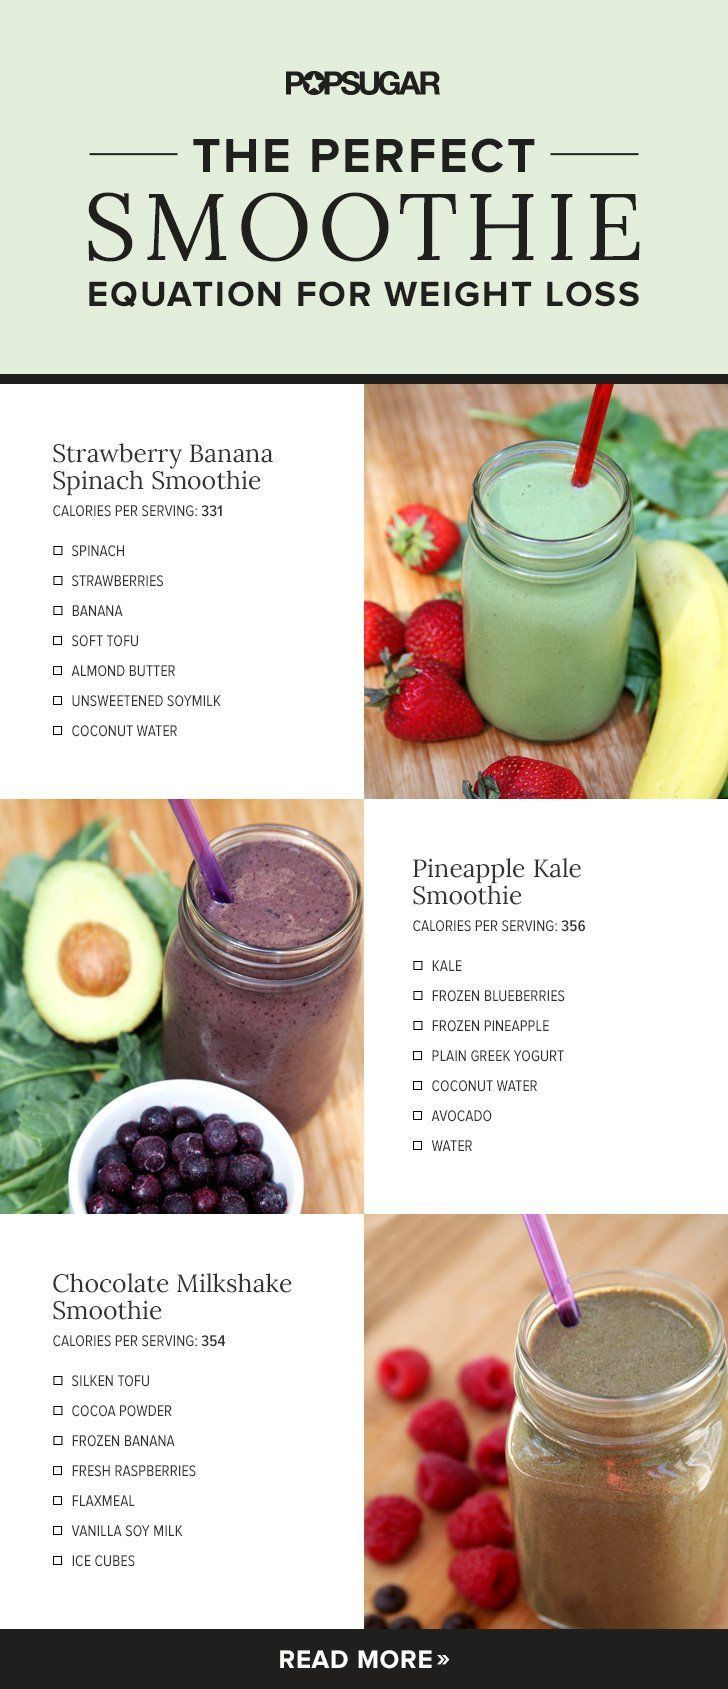 Good Healthy Smoothies For Breakfast  If You Want to Lose Weight This Is the Smoothie Formula